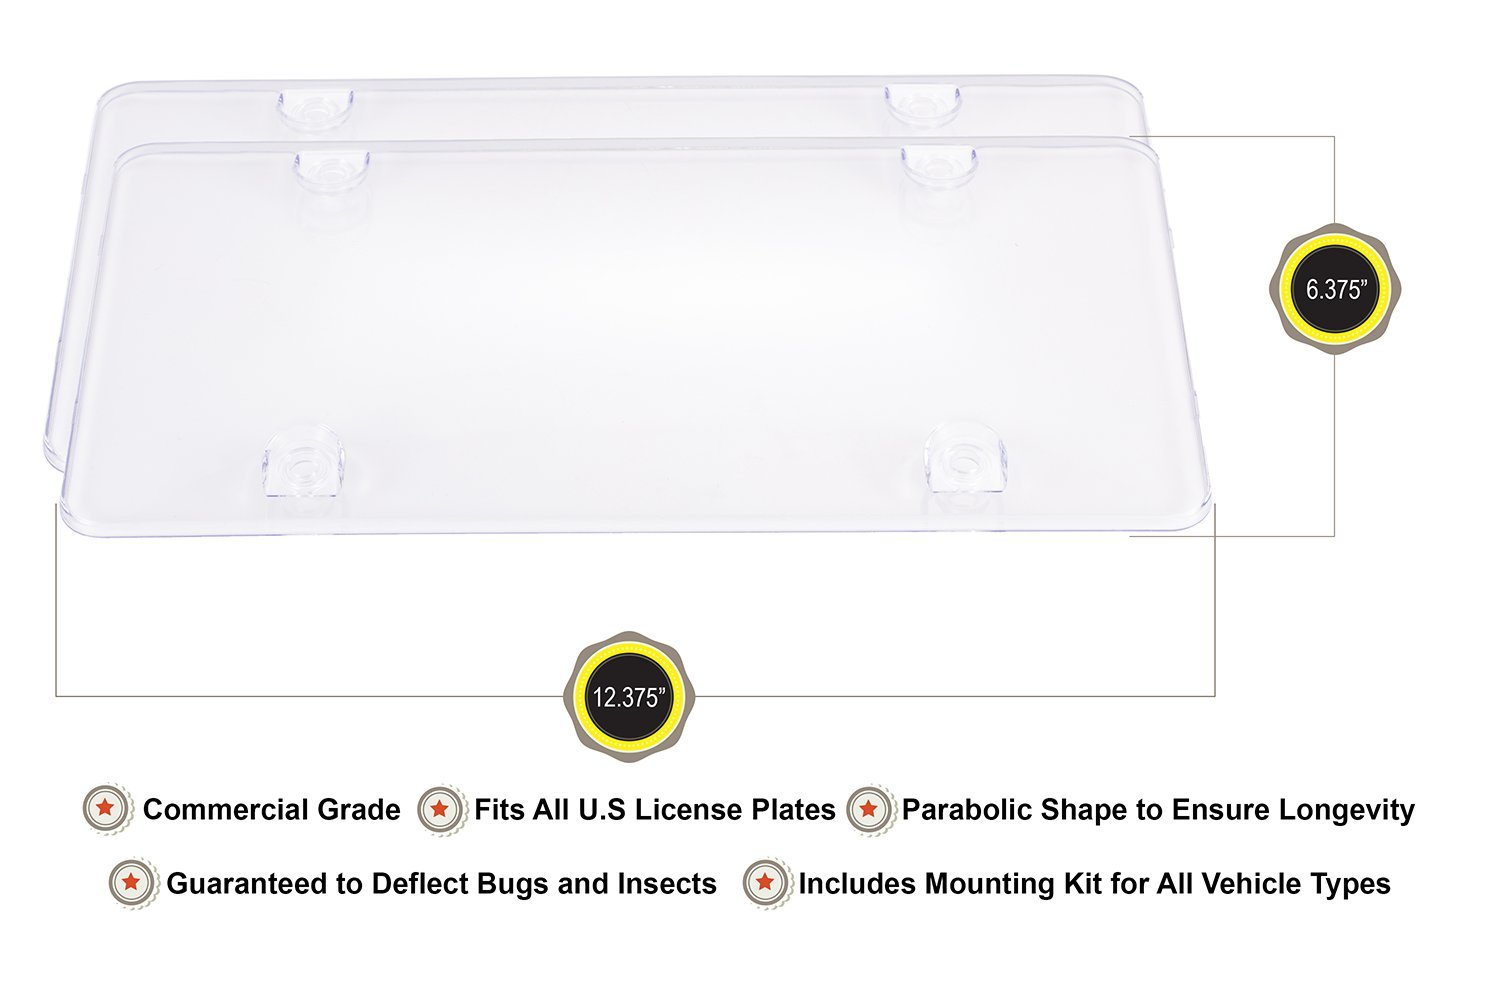 Atlantica License Plate Covers 2 pack Universal Clear License Plate Cover Protector Shield for Cars